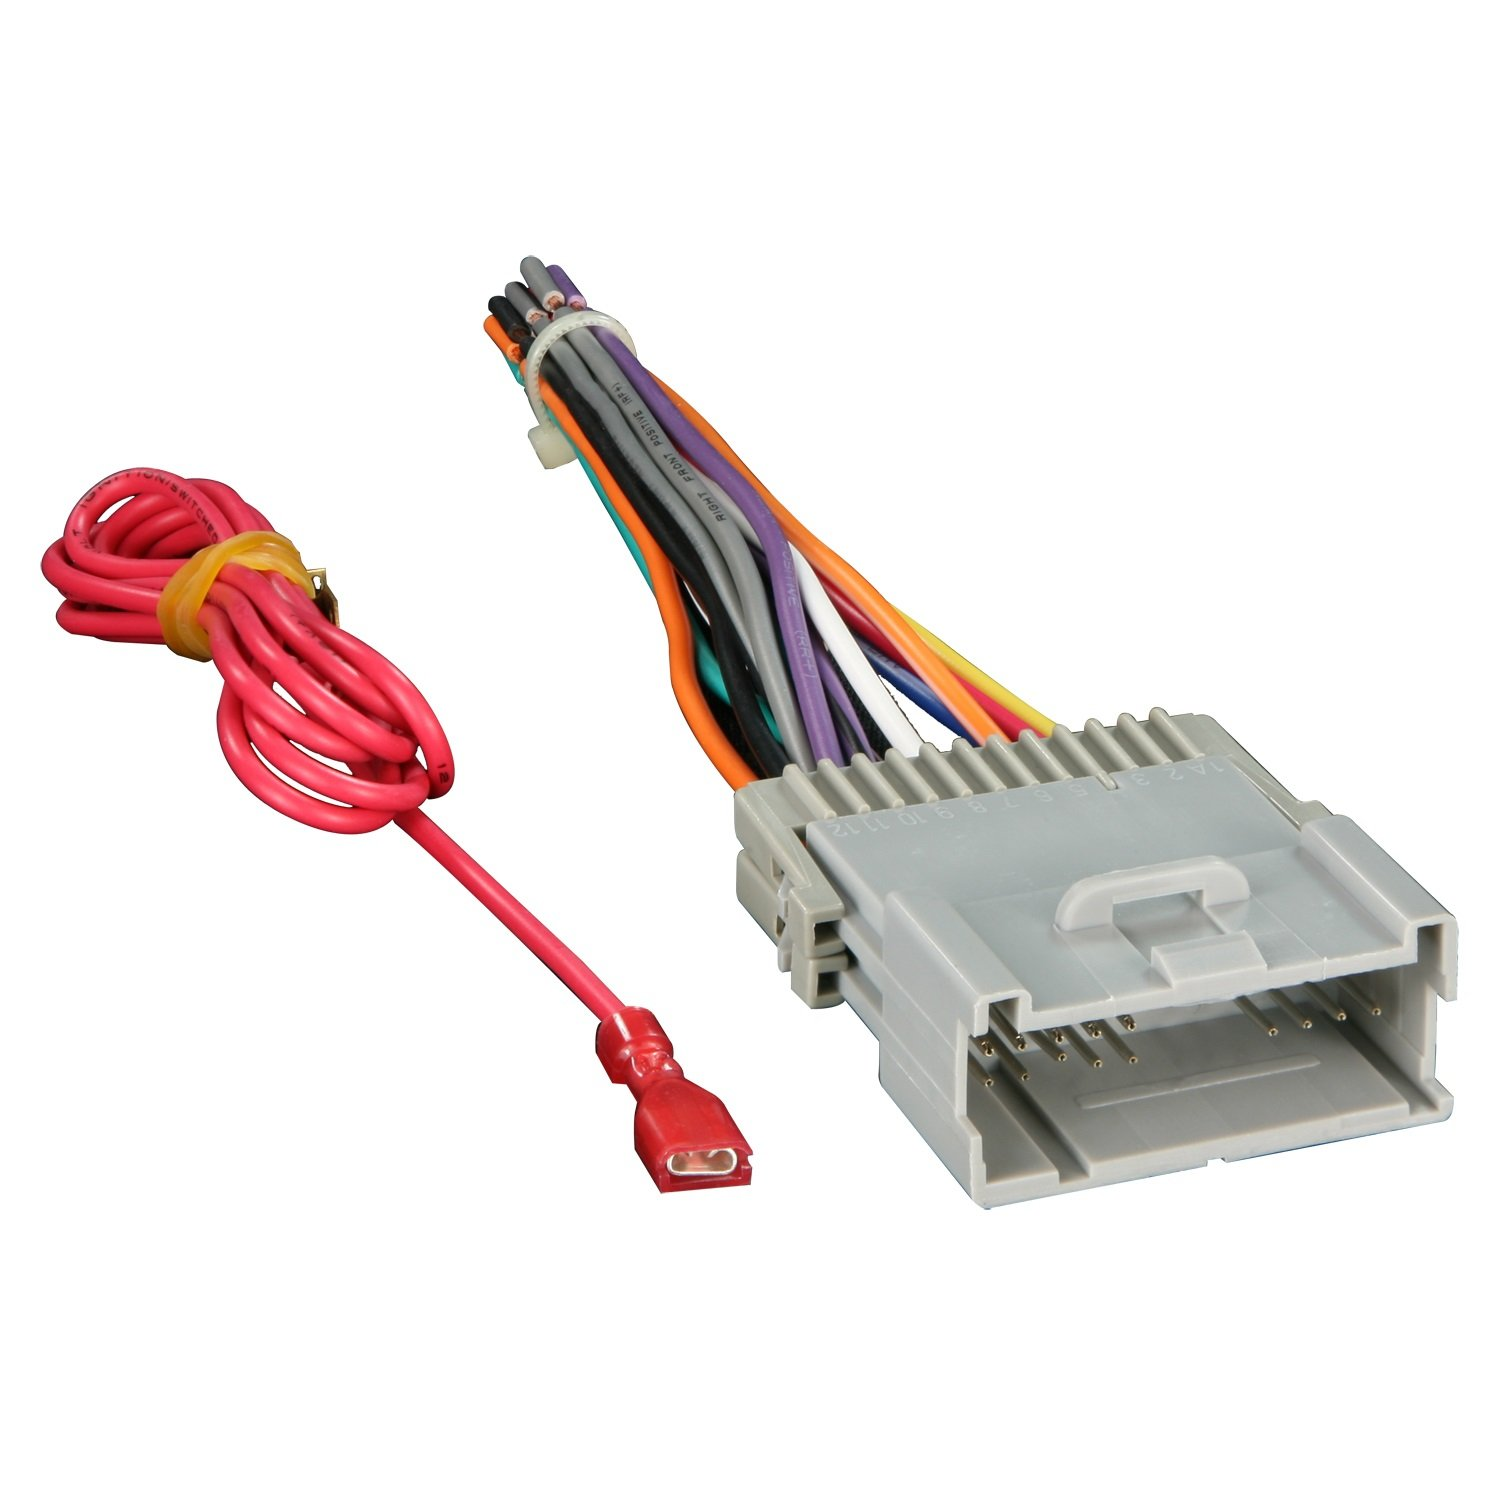 61eewxp9orL._SL1500_ amazon com metra 70 2003 radio wiring harness for gm 98 08  at pacquiaovsvargaslive.co